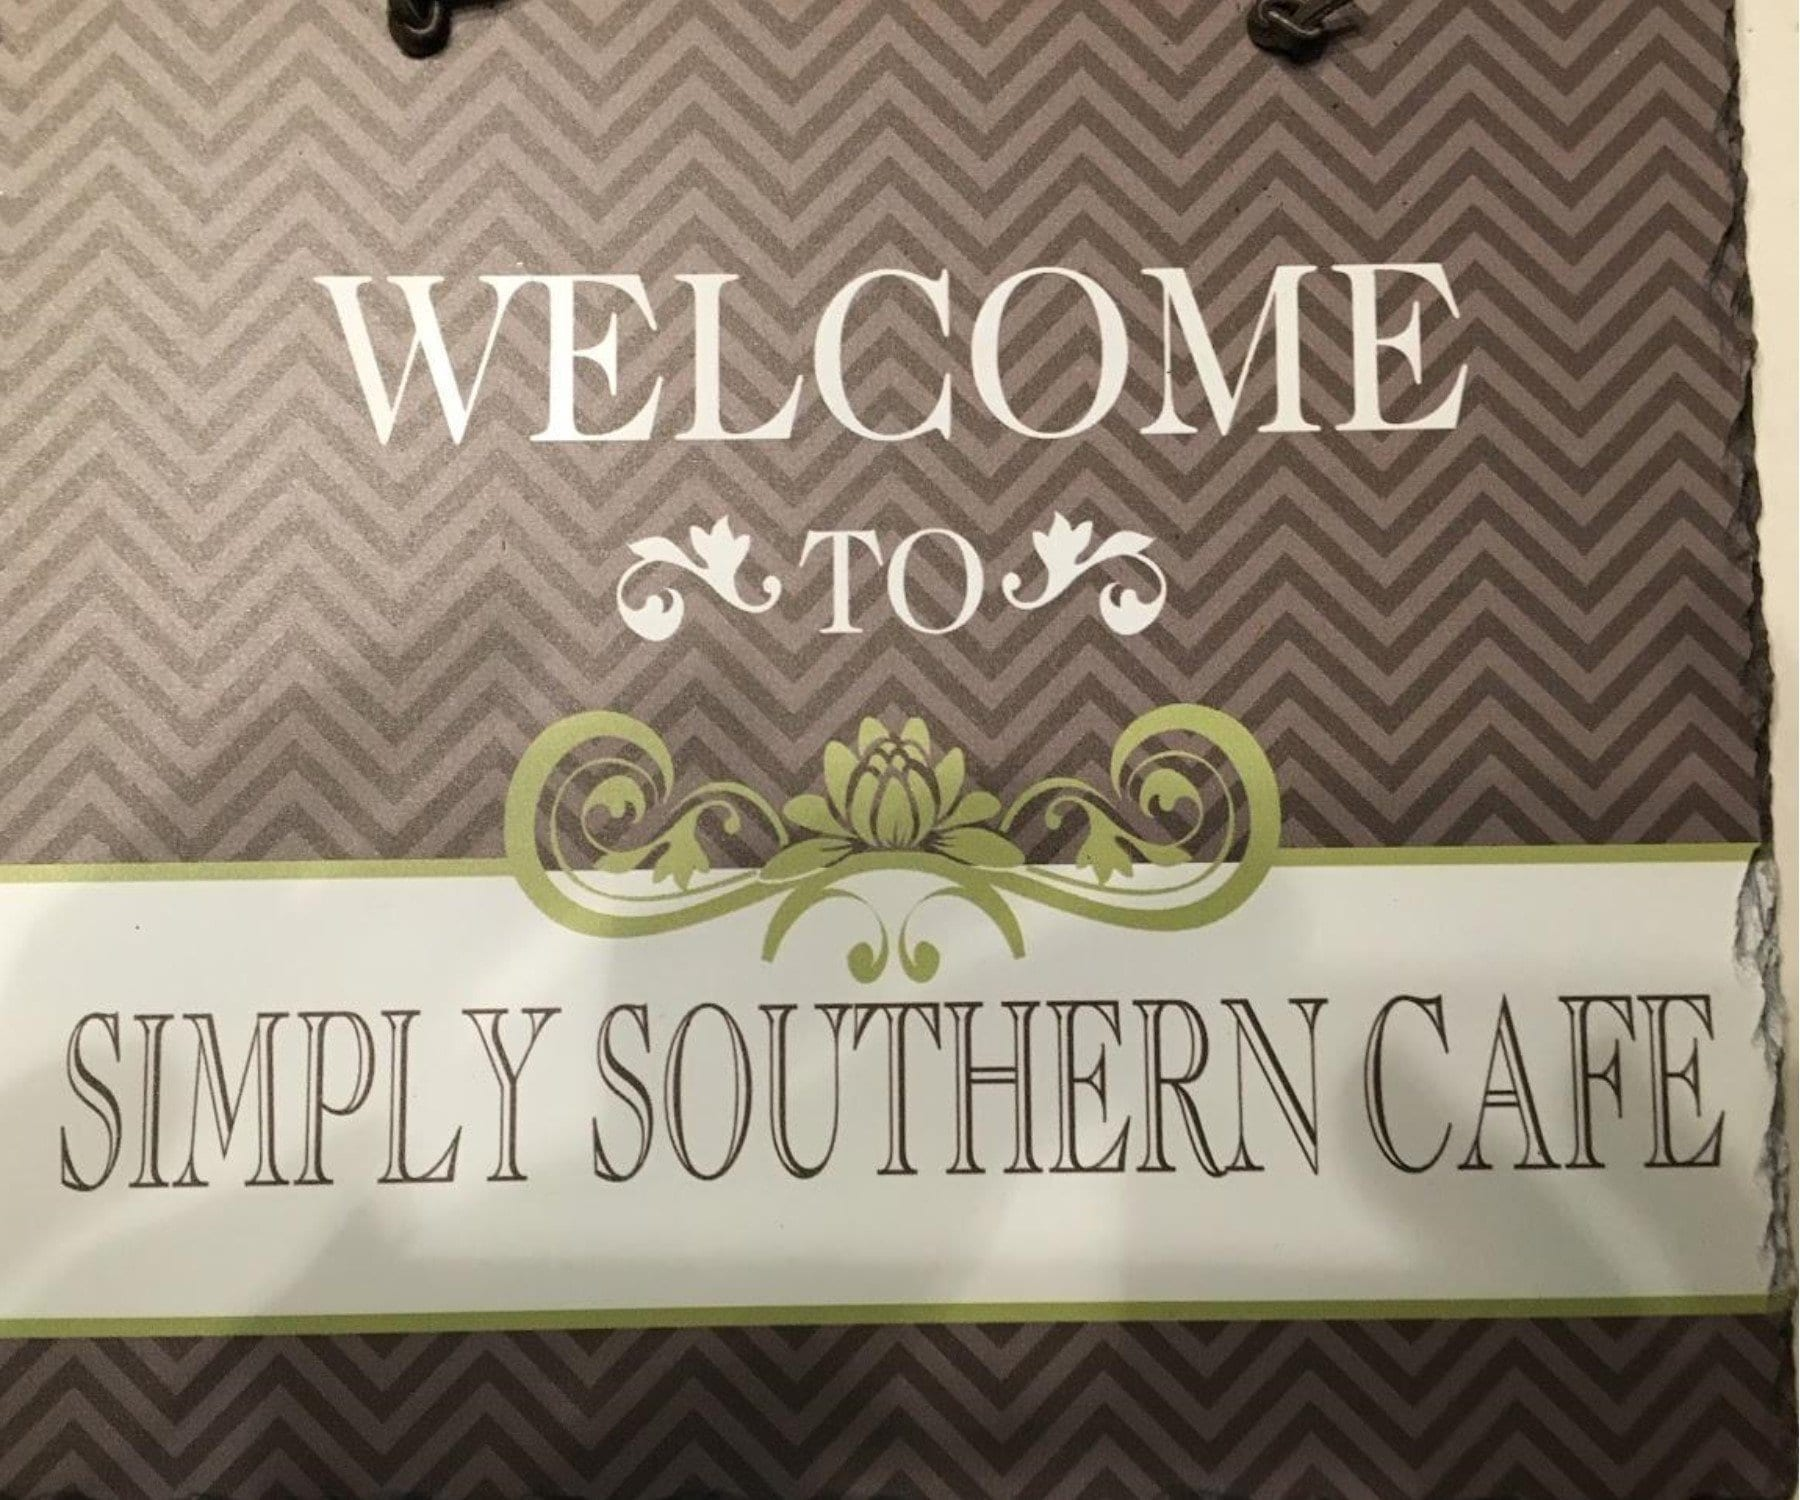 Simply Southern Cafe Salem Kentucky